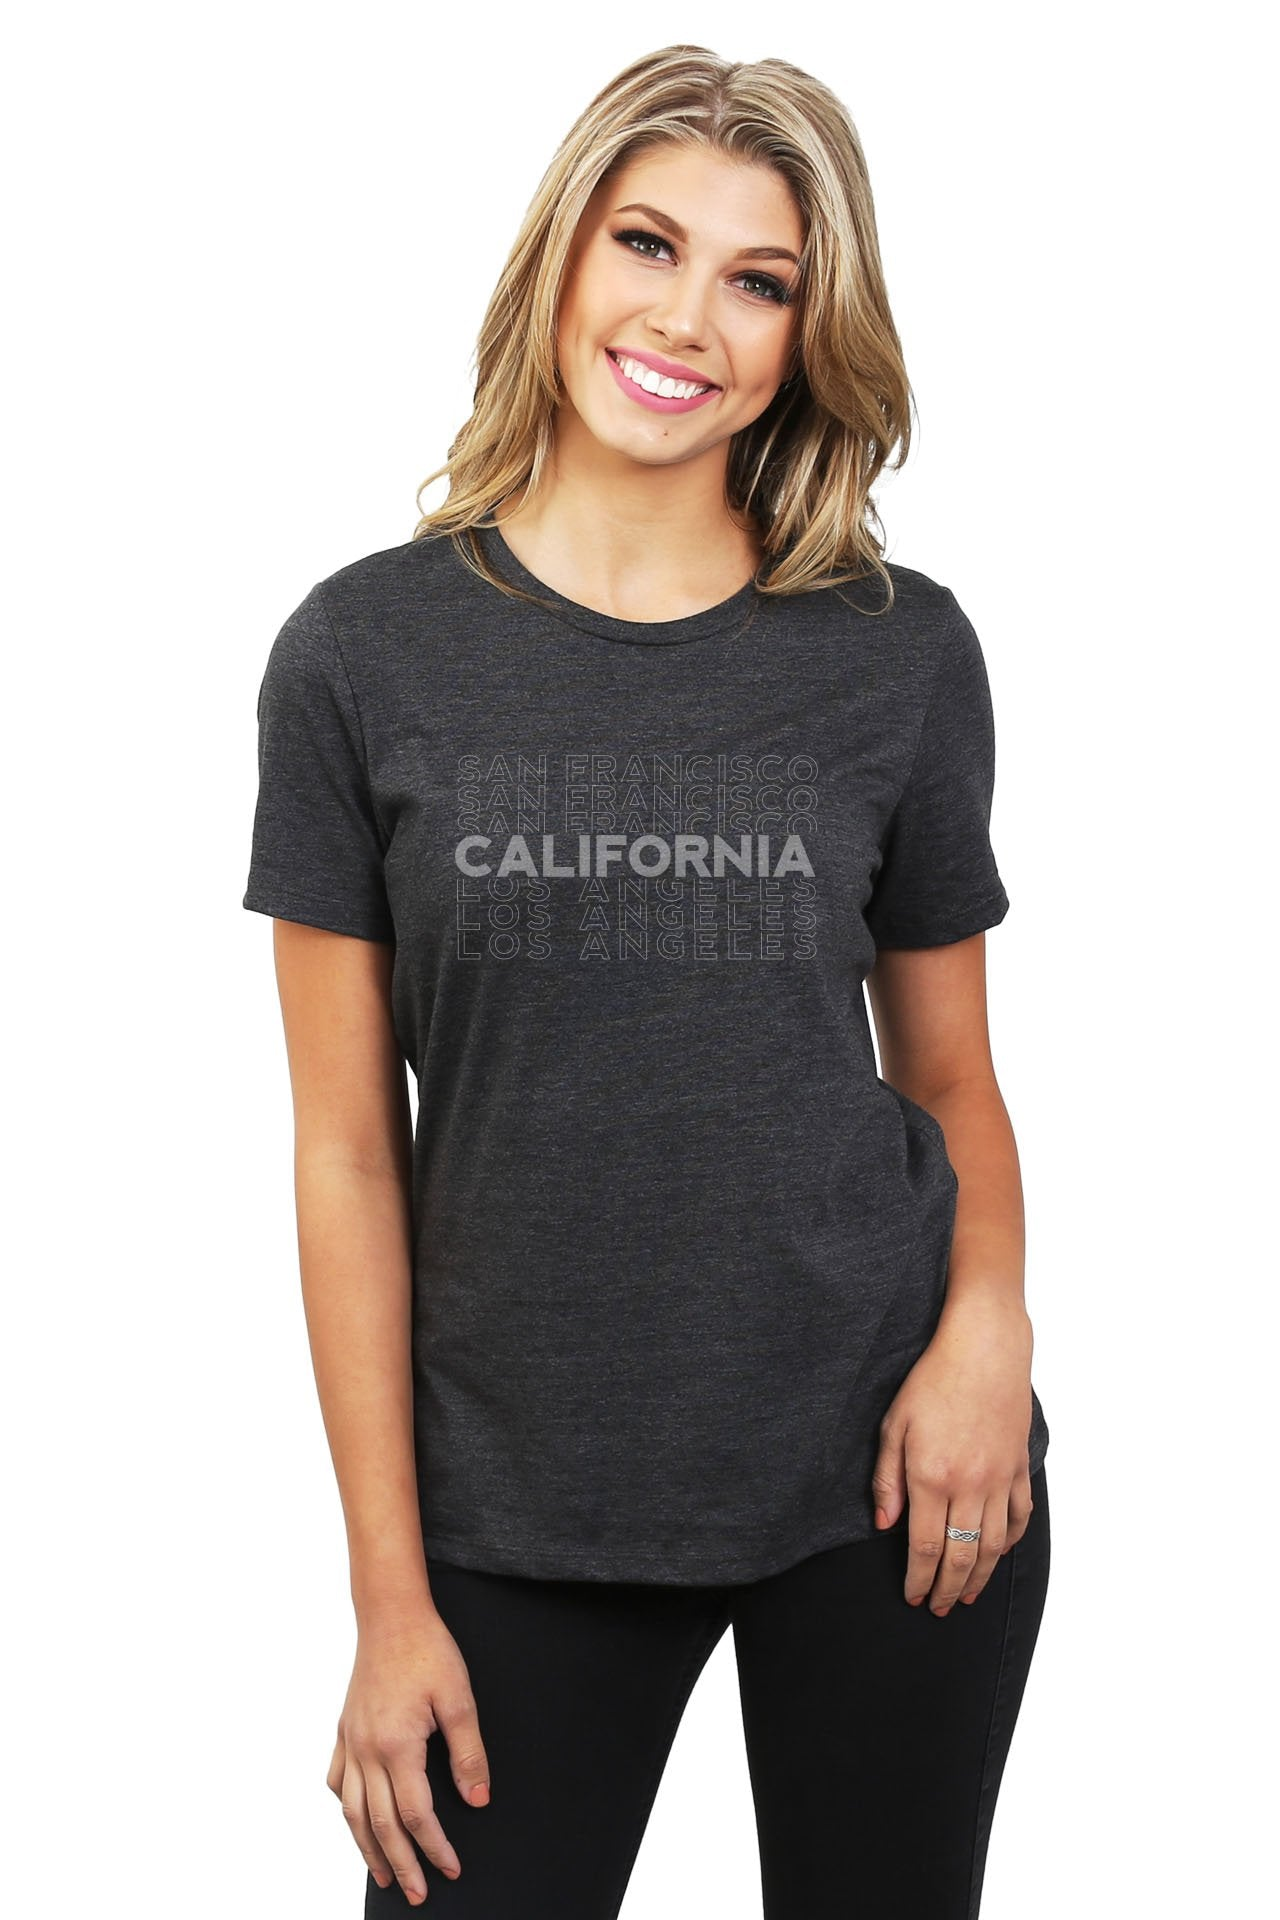 California SF to LA - Thread Tank | Stories You Can Wear | T-Shirts, Tank Tops and Sweatshirts